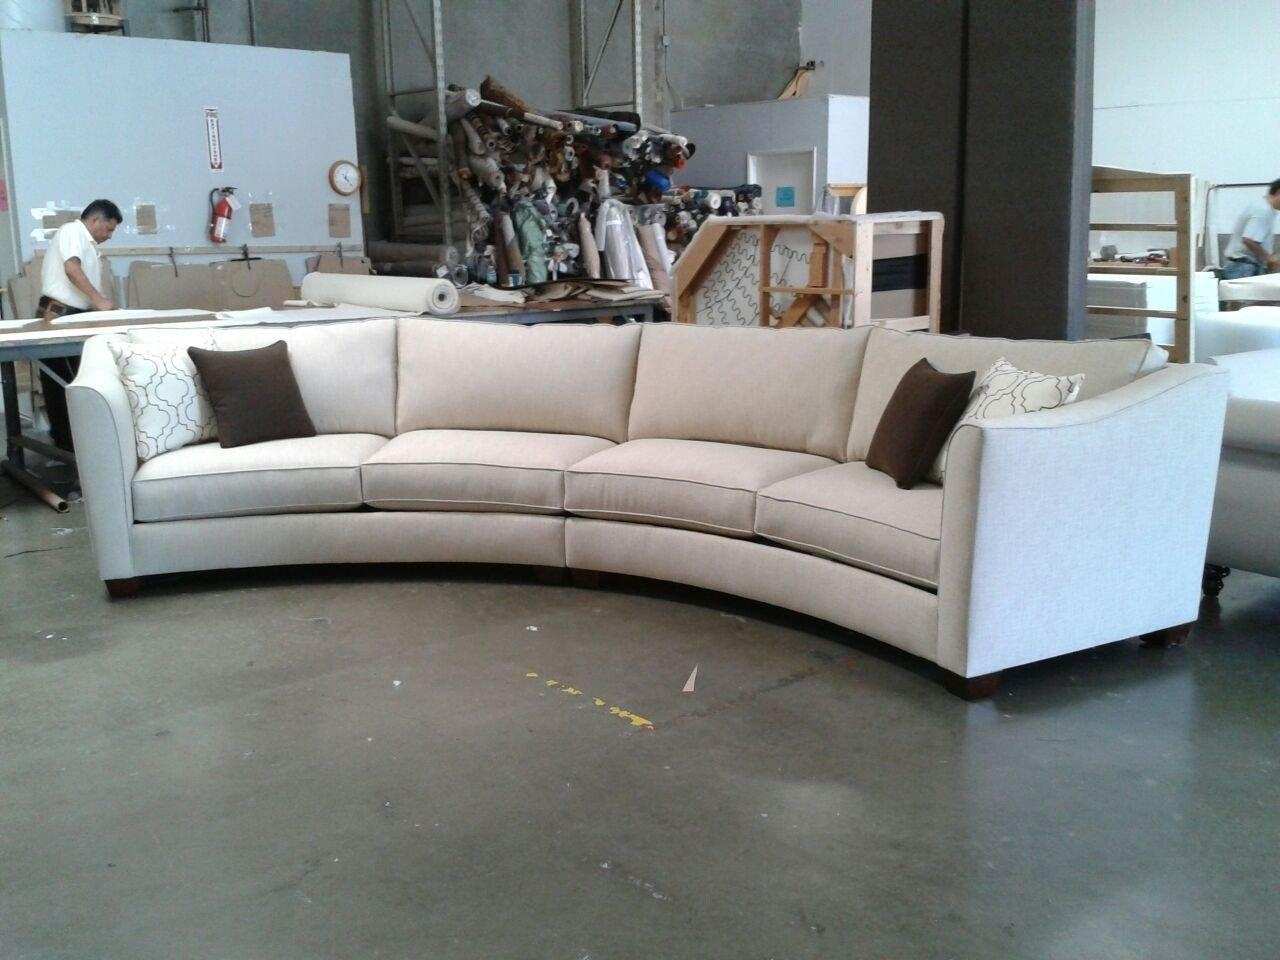 Sofas Center : Curved Sectional Sofa White Leather With Black Wood Intended For Leather Curved Sectional (Image 17 of 20)